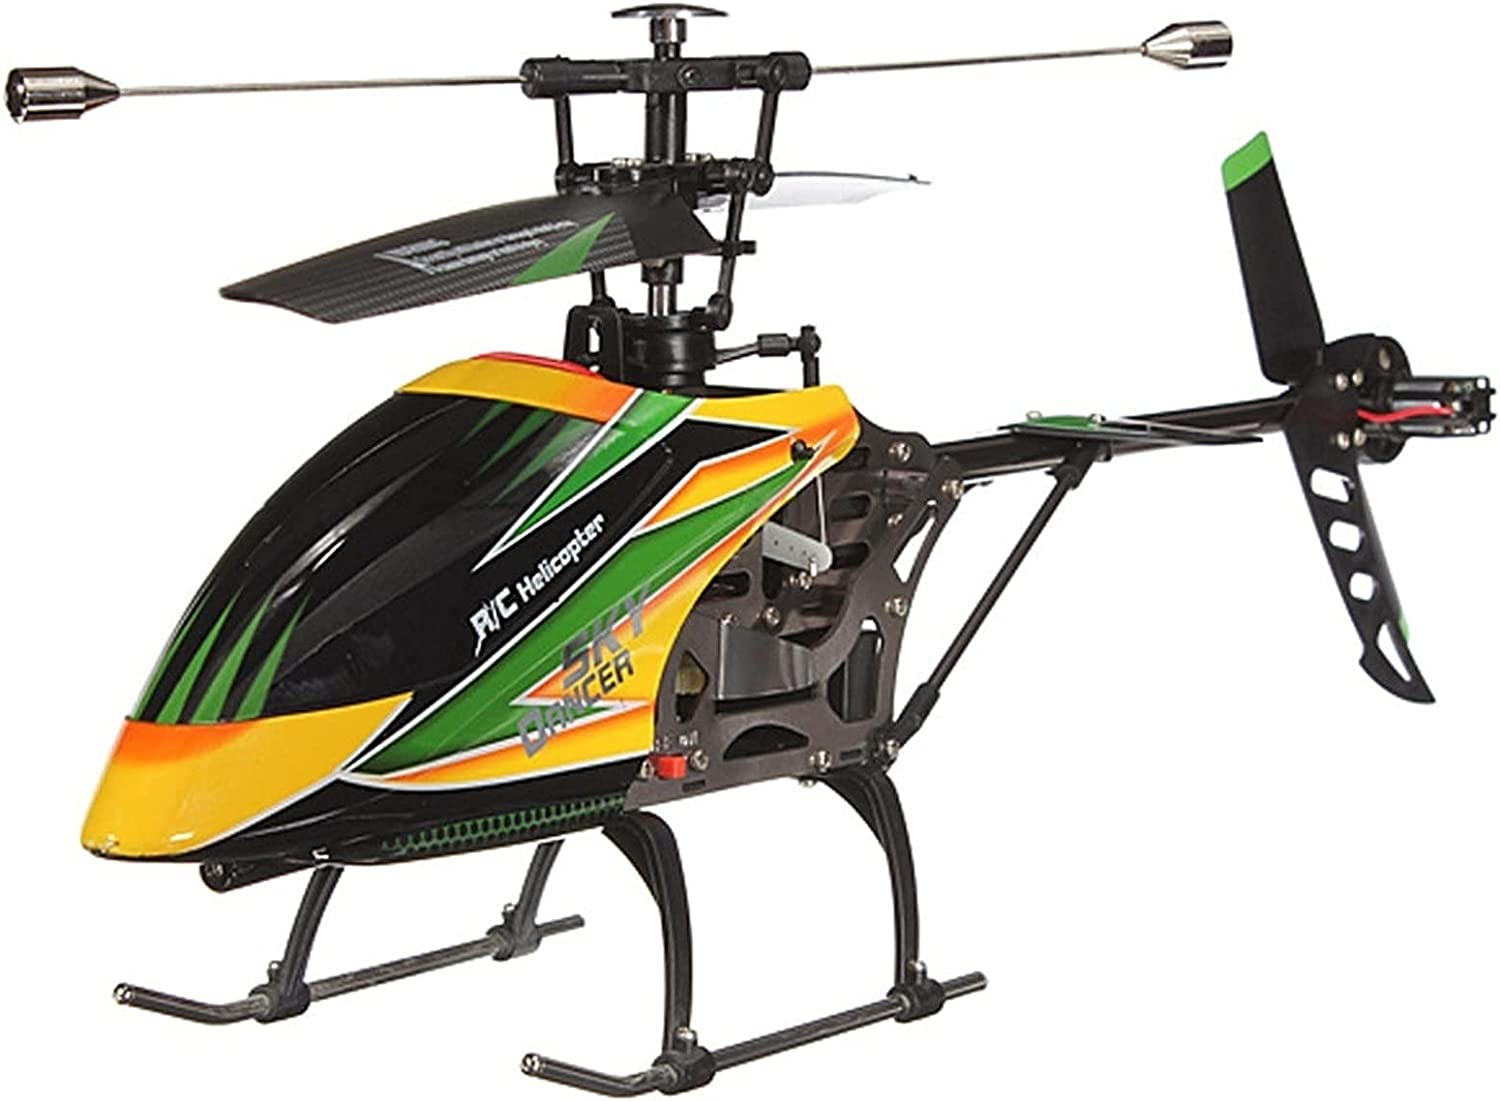 Moerc Rc Helicopters for Cheap SALE Start Cheap sale Outdoor Large Adults Indoor Helicopter